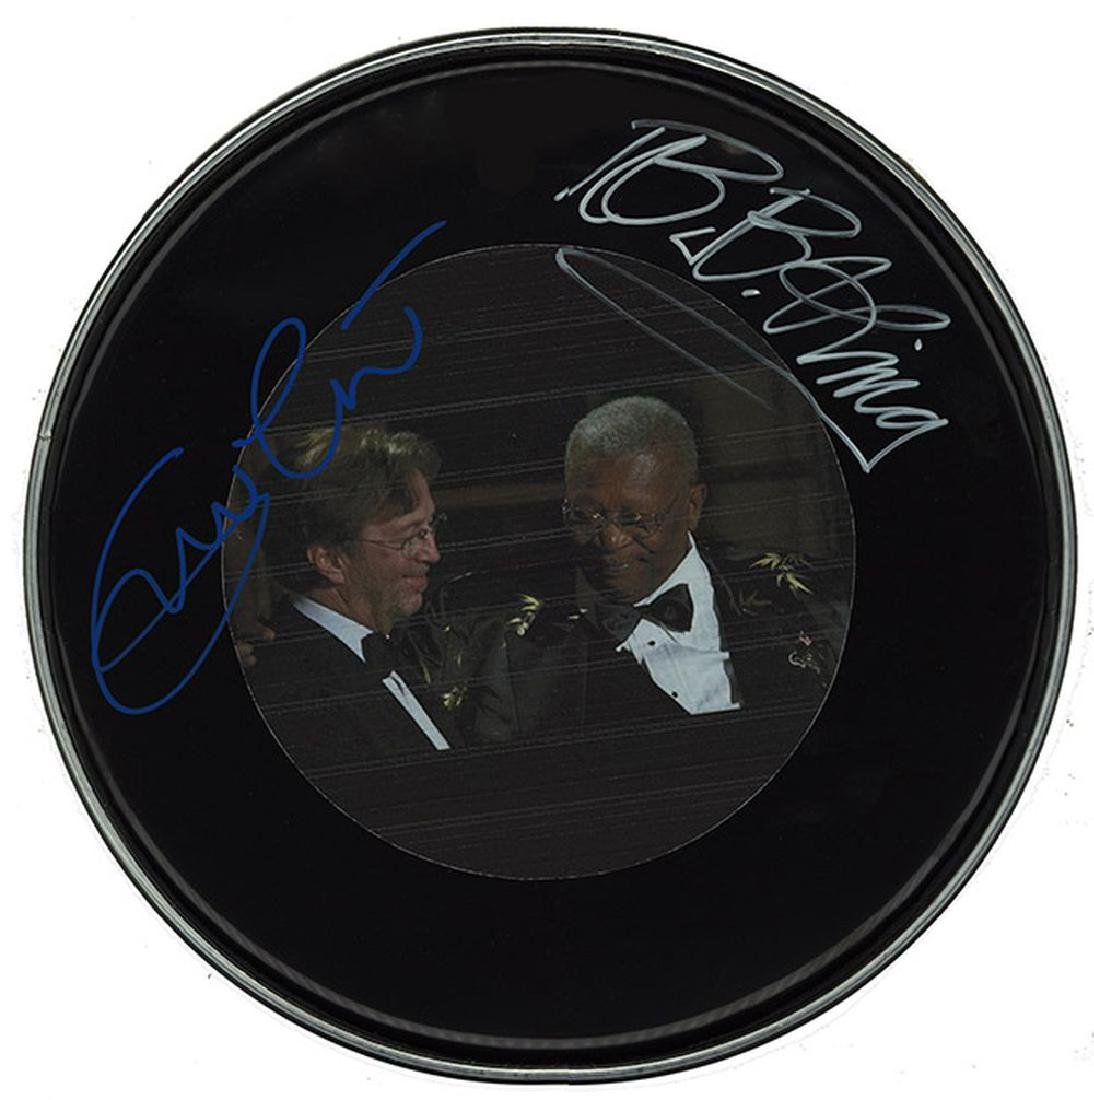 Eric Clapton & B.B. King Drum Head